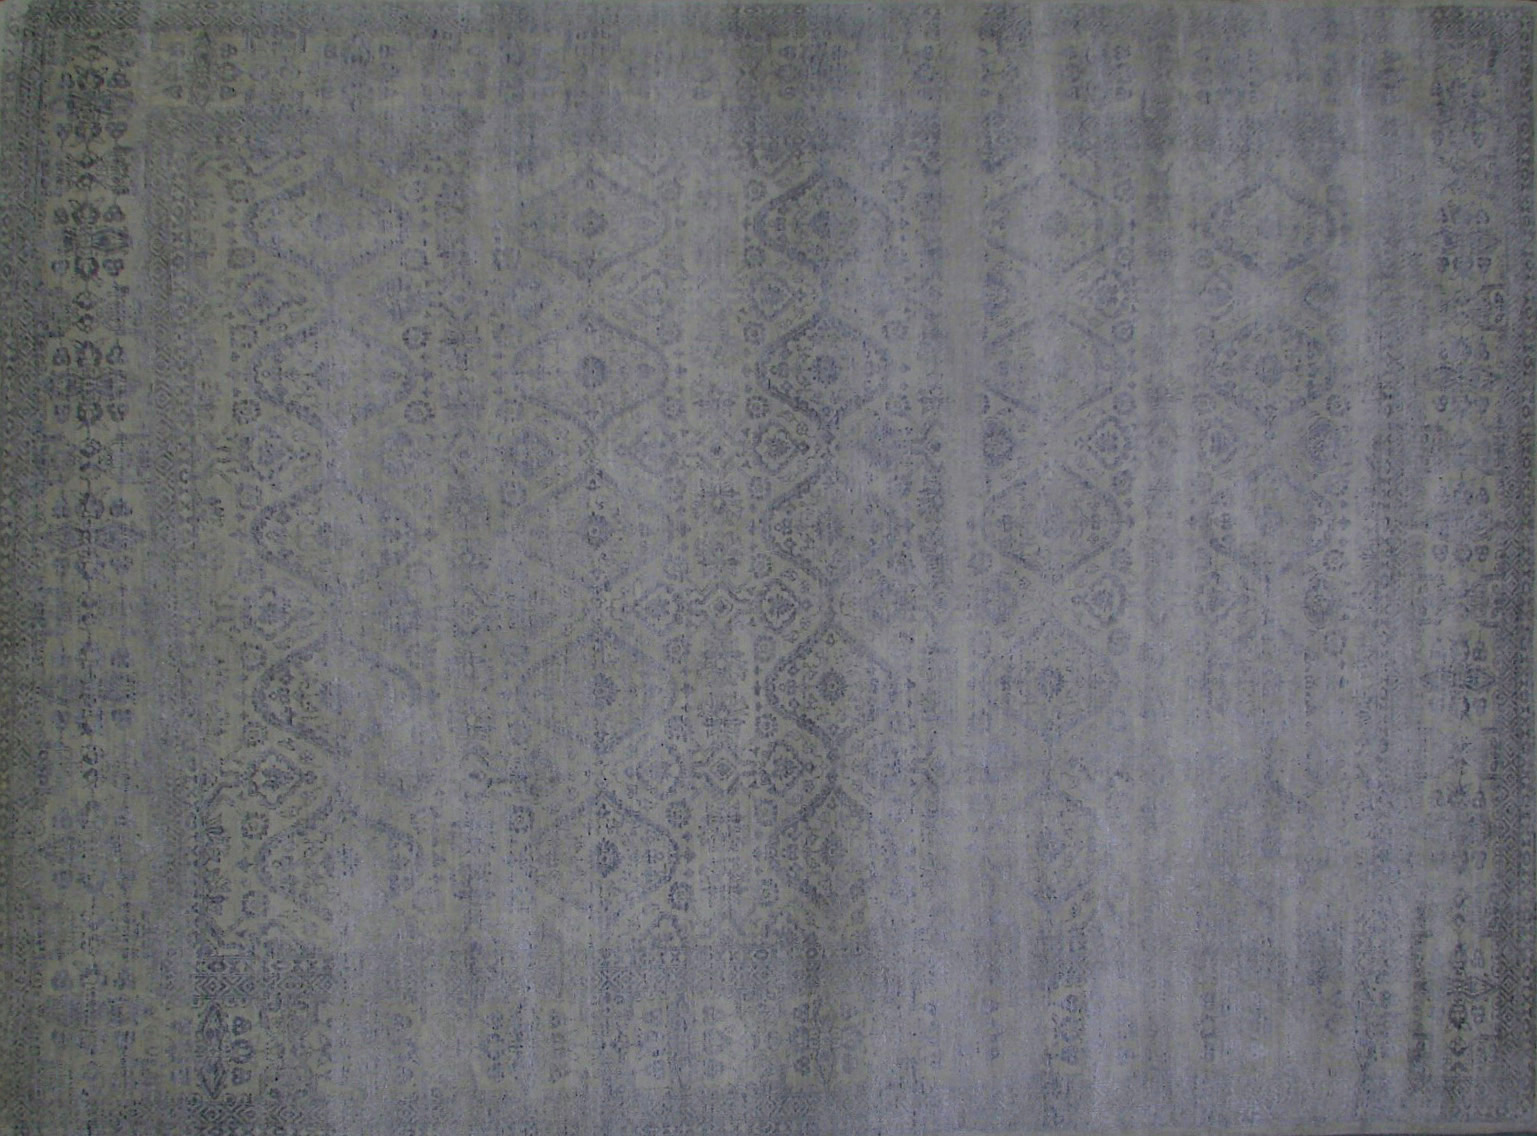 9x12 Contemporary Hand Knotted Wool Area Rug - MR20996